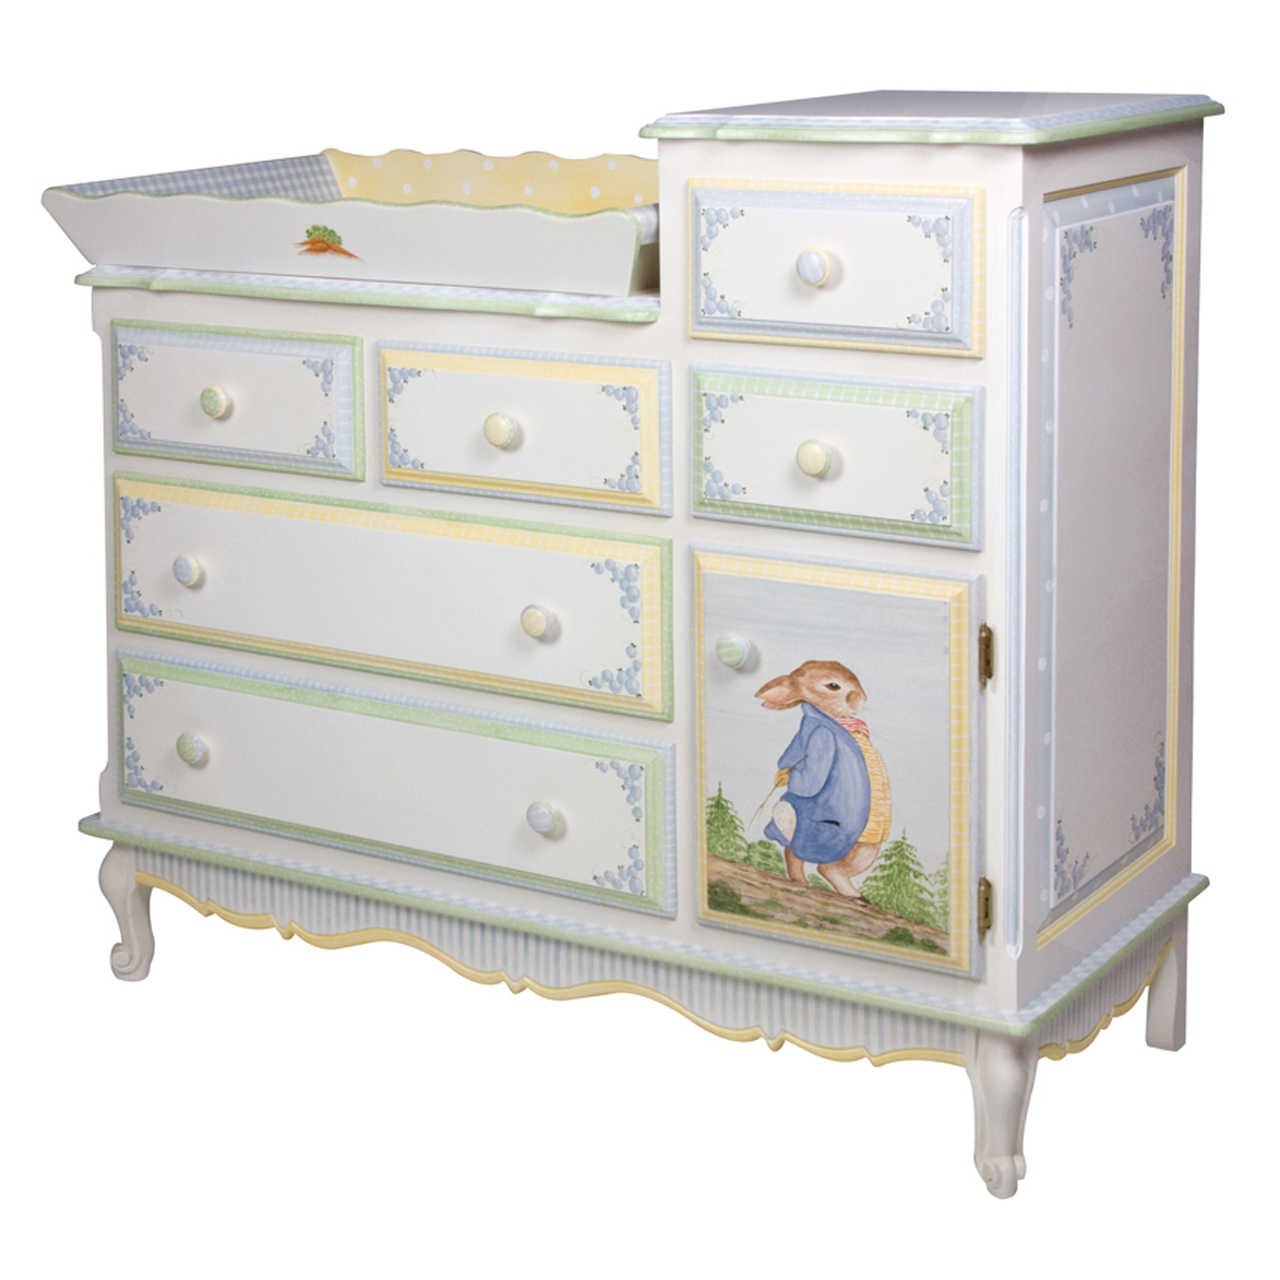 french style nursery furniture. frenchchangerwithtrayef1280jpg french style nursery furniture s